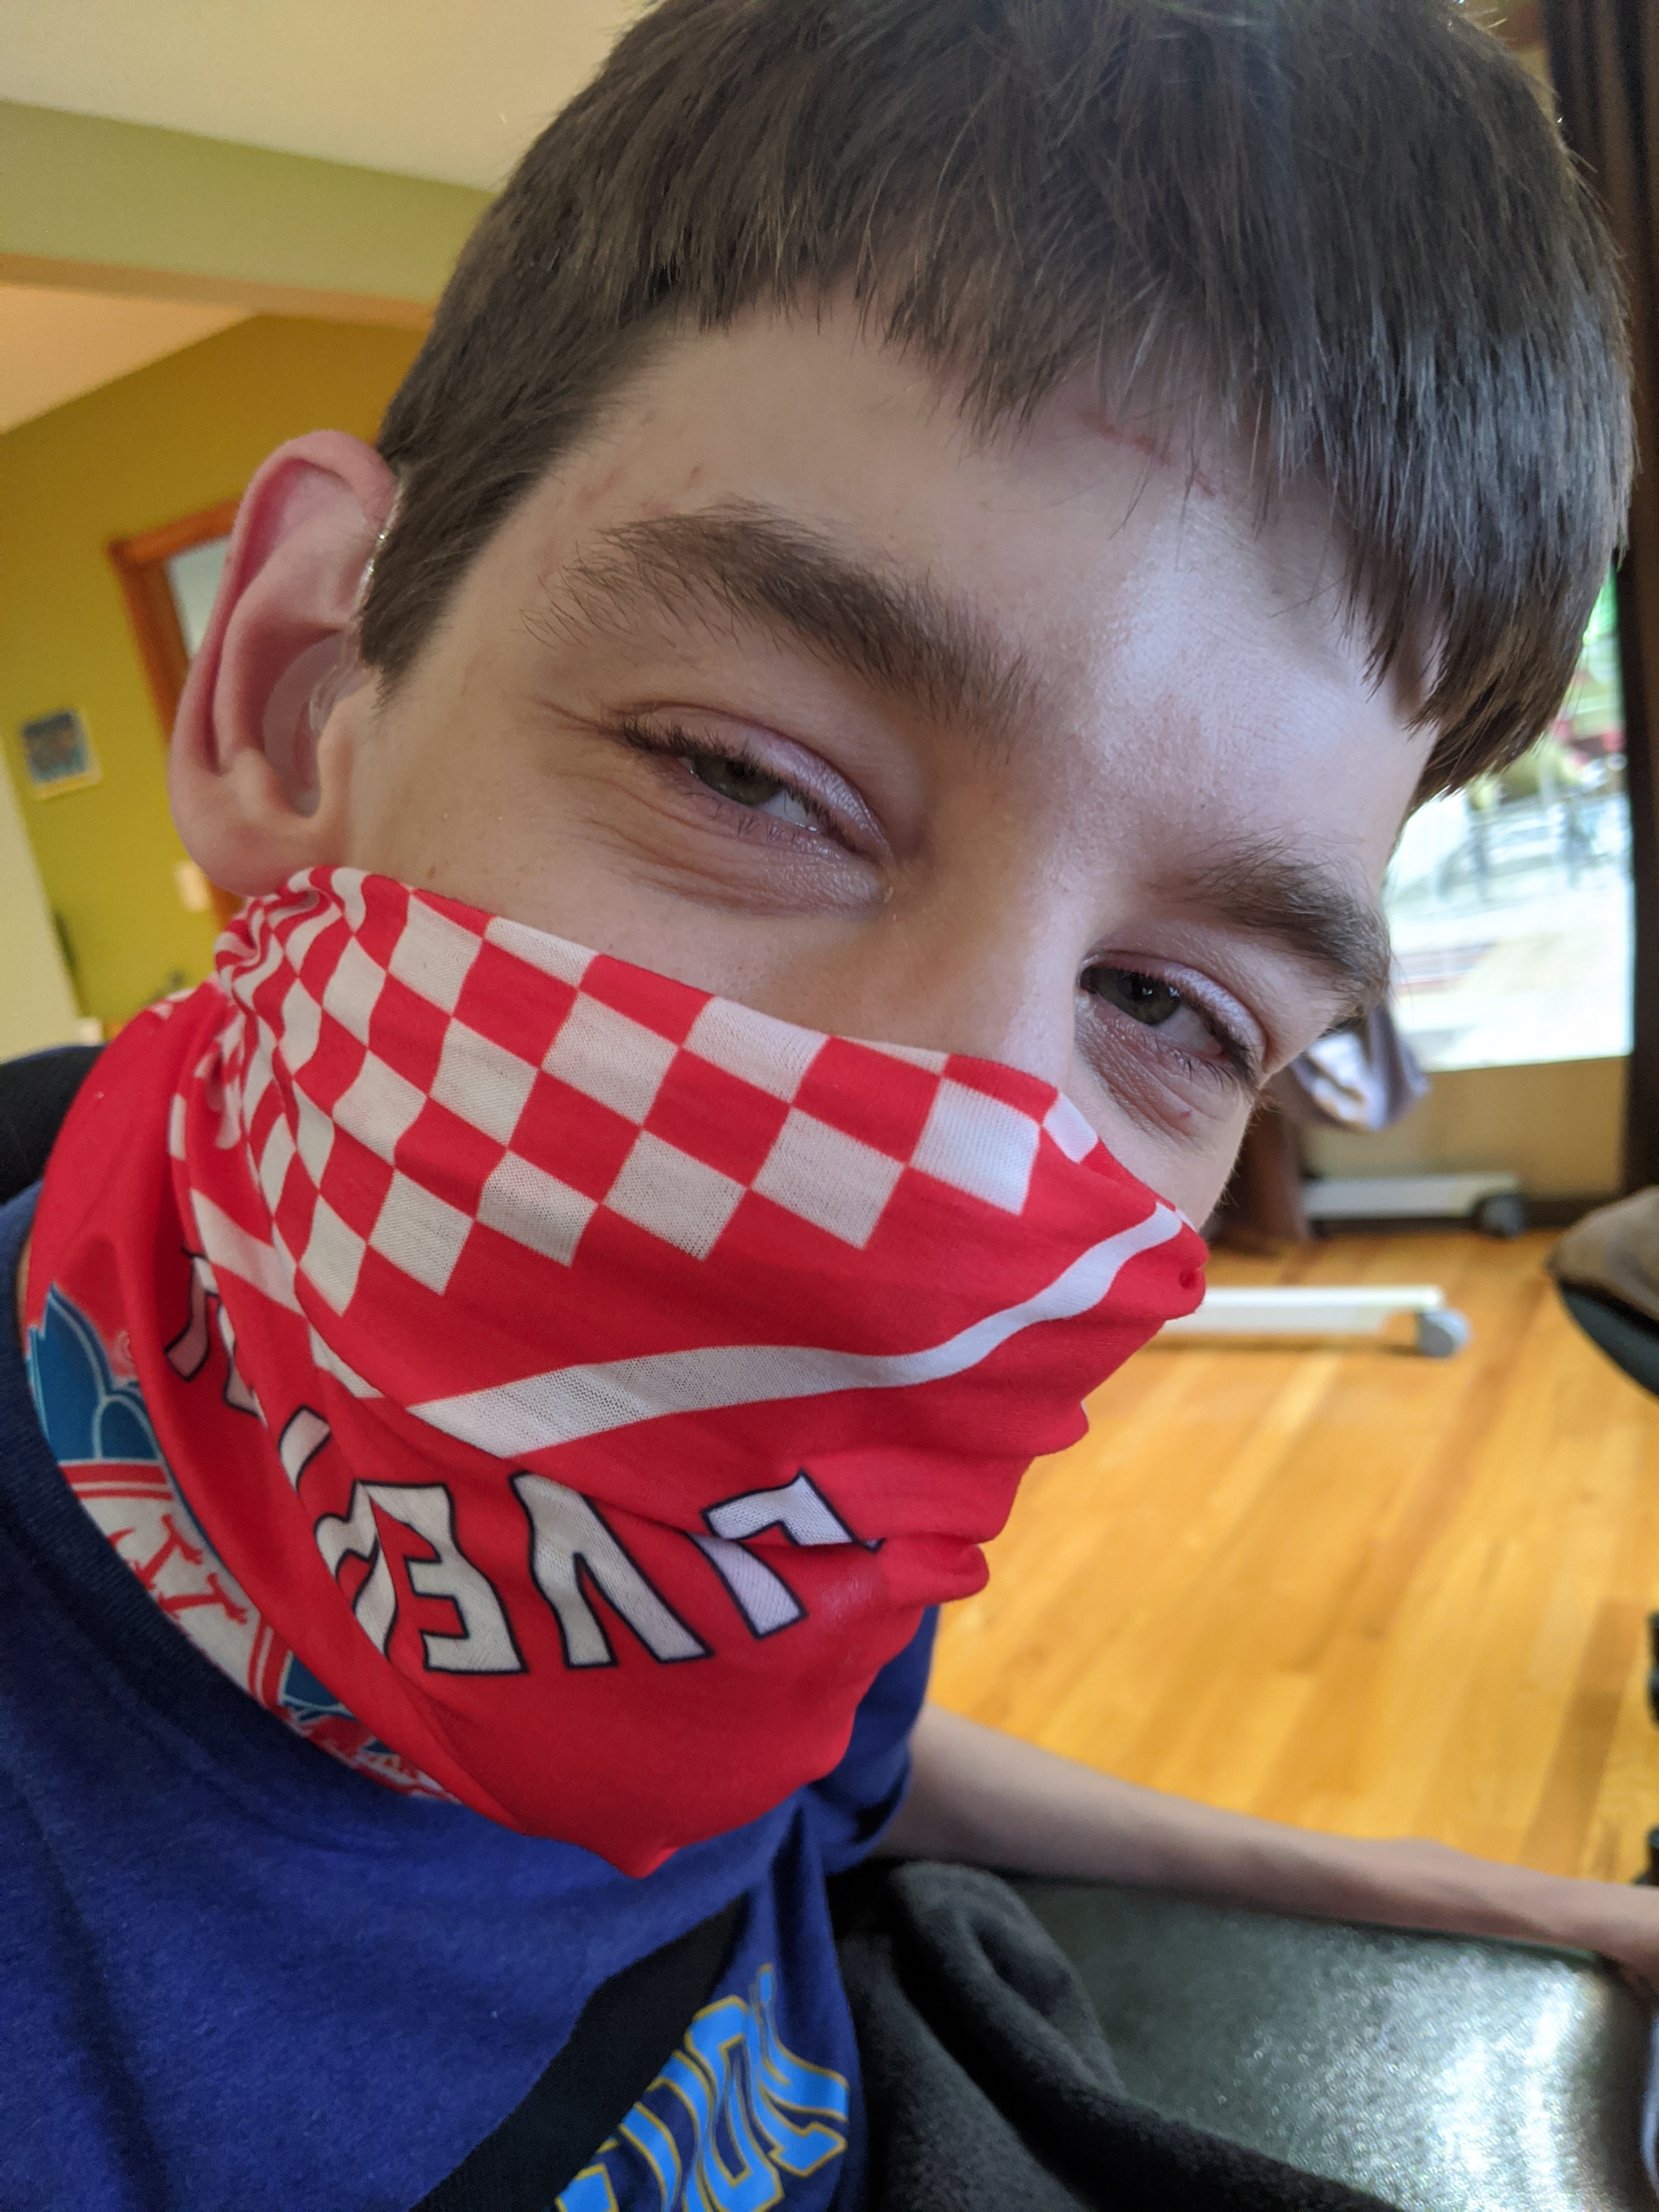 Justin with Liverpool soccer mask